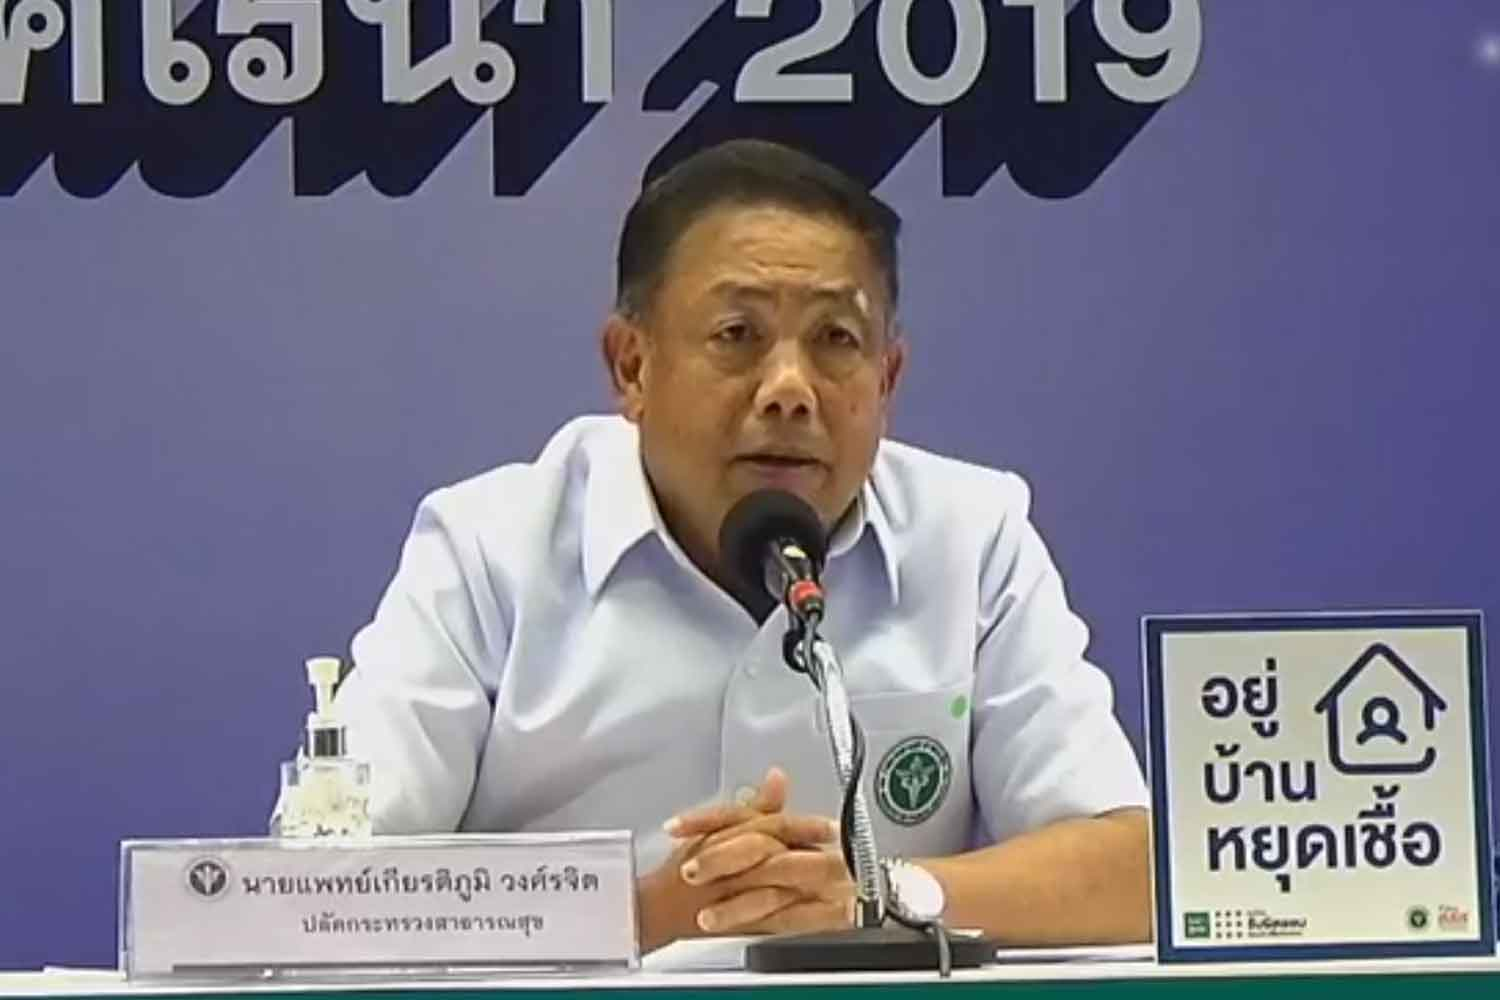 Dr Kiatiphum Wongrajit, permanent secretary for health, gives an update on situation related to infected illegal returnees from Tachilek, at the Public Health Ministry in Nonthaburi province on Thursday. (Screenshot from the Facebook page of the Centre for Covid-19 Situation Administration)